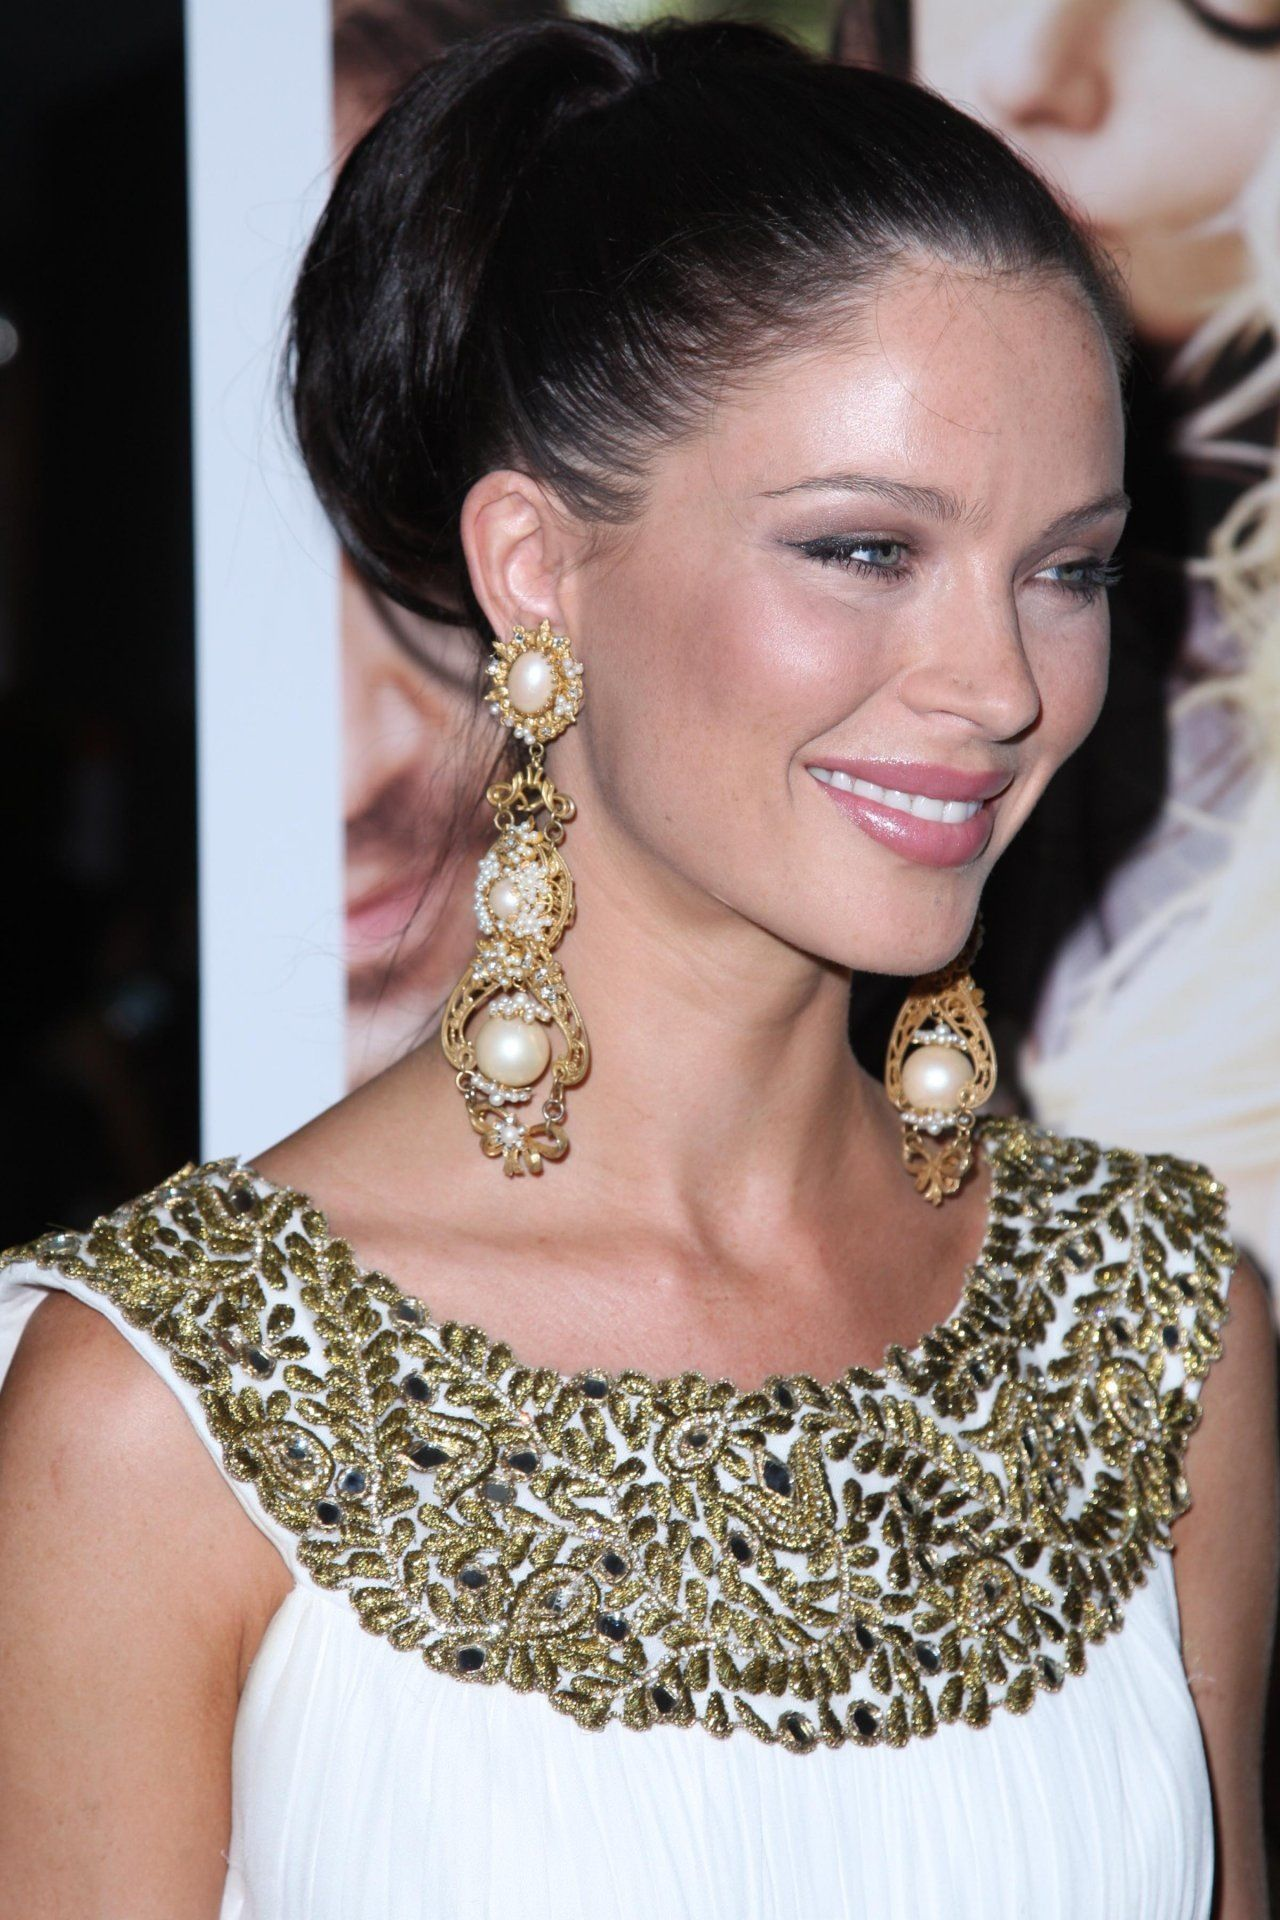 georgina chapman red carpetgeorgina chapman husband, georgina chapman 2016, georgina chapman zimbio, georgina chapman and keren craig, georgina chapman makeup, georgina chapman awake, georgina chapman height, georgina chapman collection, georgina chapman wedding dress, georgina chapman instagram, georgina chapman style, georgina chapman red carpet, georgina chapman son, georgina chapman, georgina chapman net worth, georgina chapman wedding, georgina chapman dresses, georgina chapman daughter, georgina chapman wiki, georgina chapman twitter